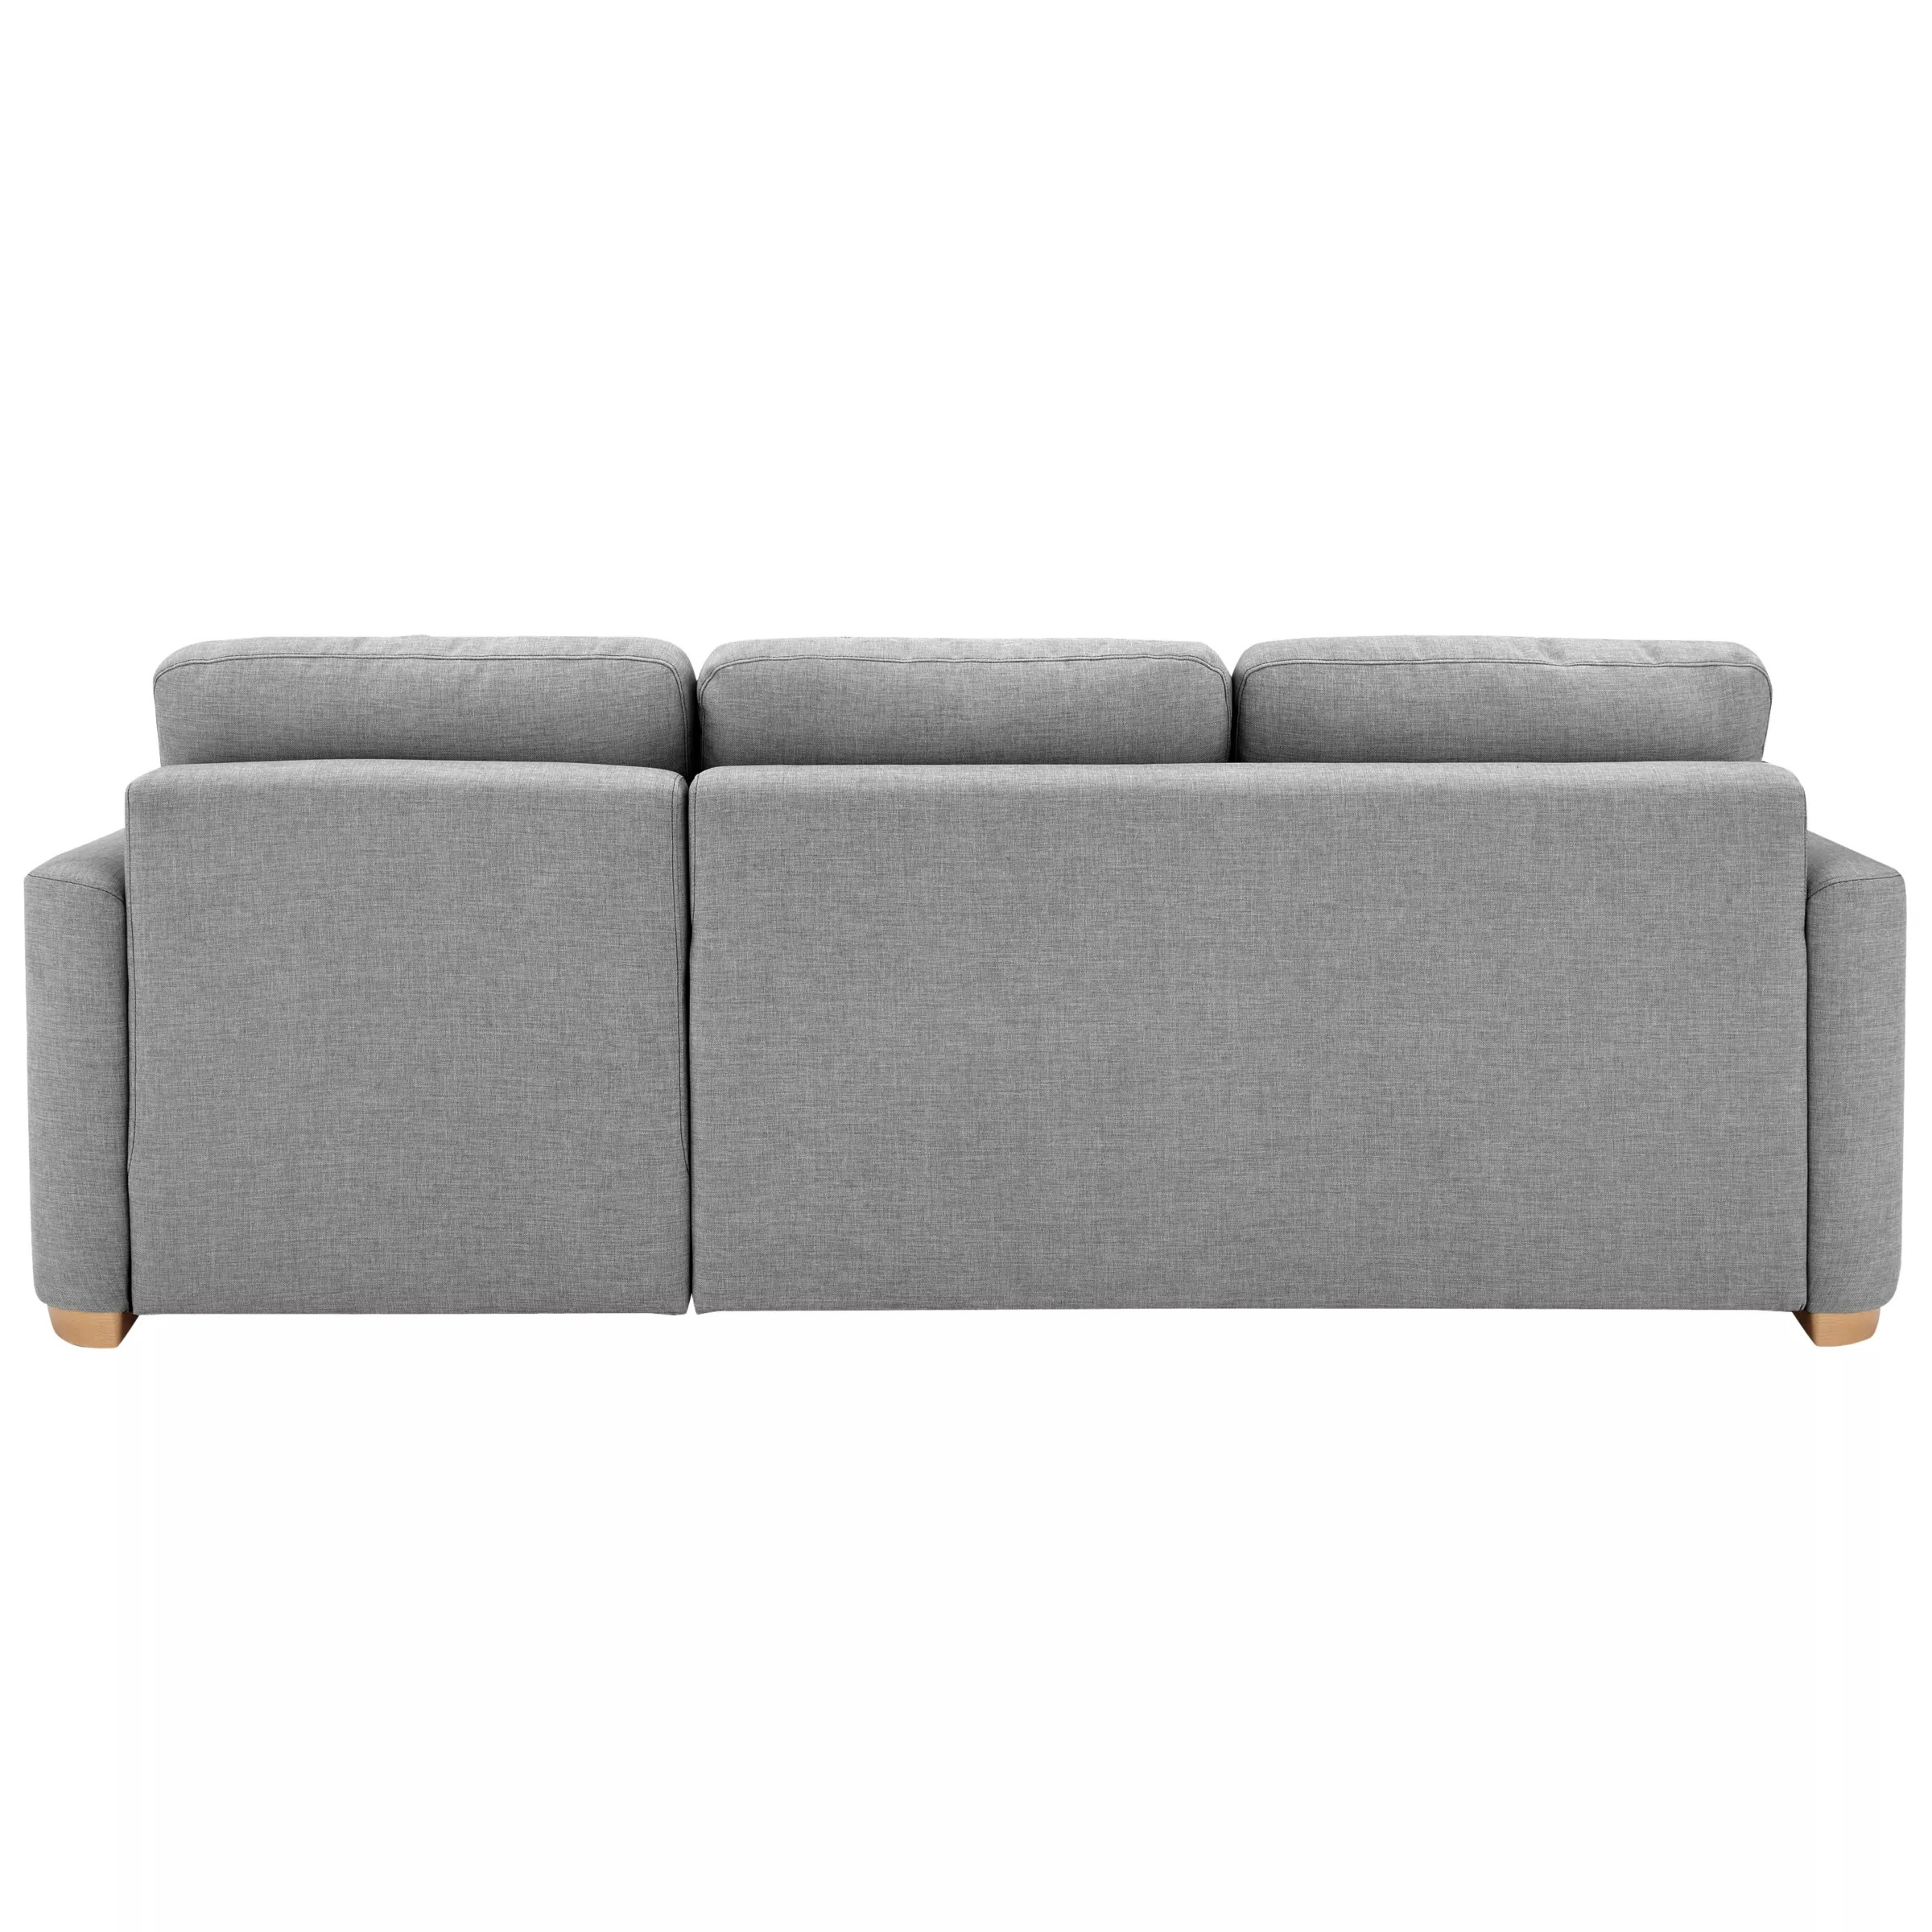 sacha large leather sofa bed madras chocolate camel back sectional john lewis reviews brokeasshome